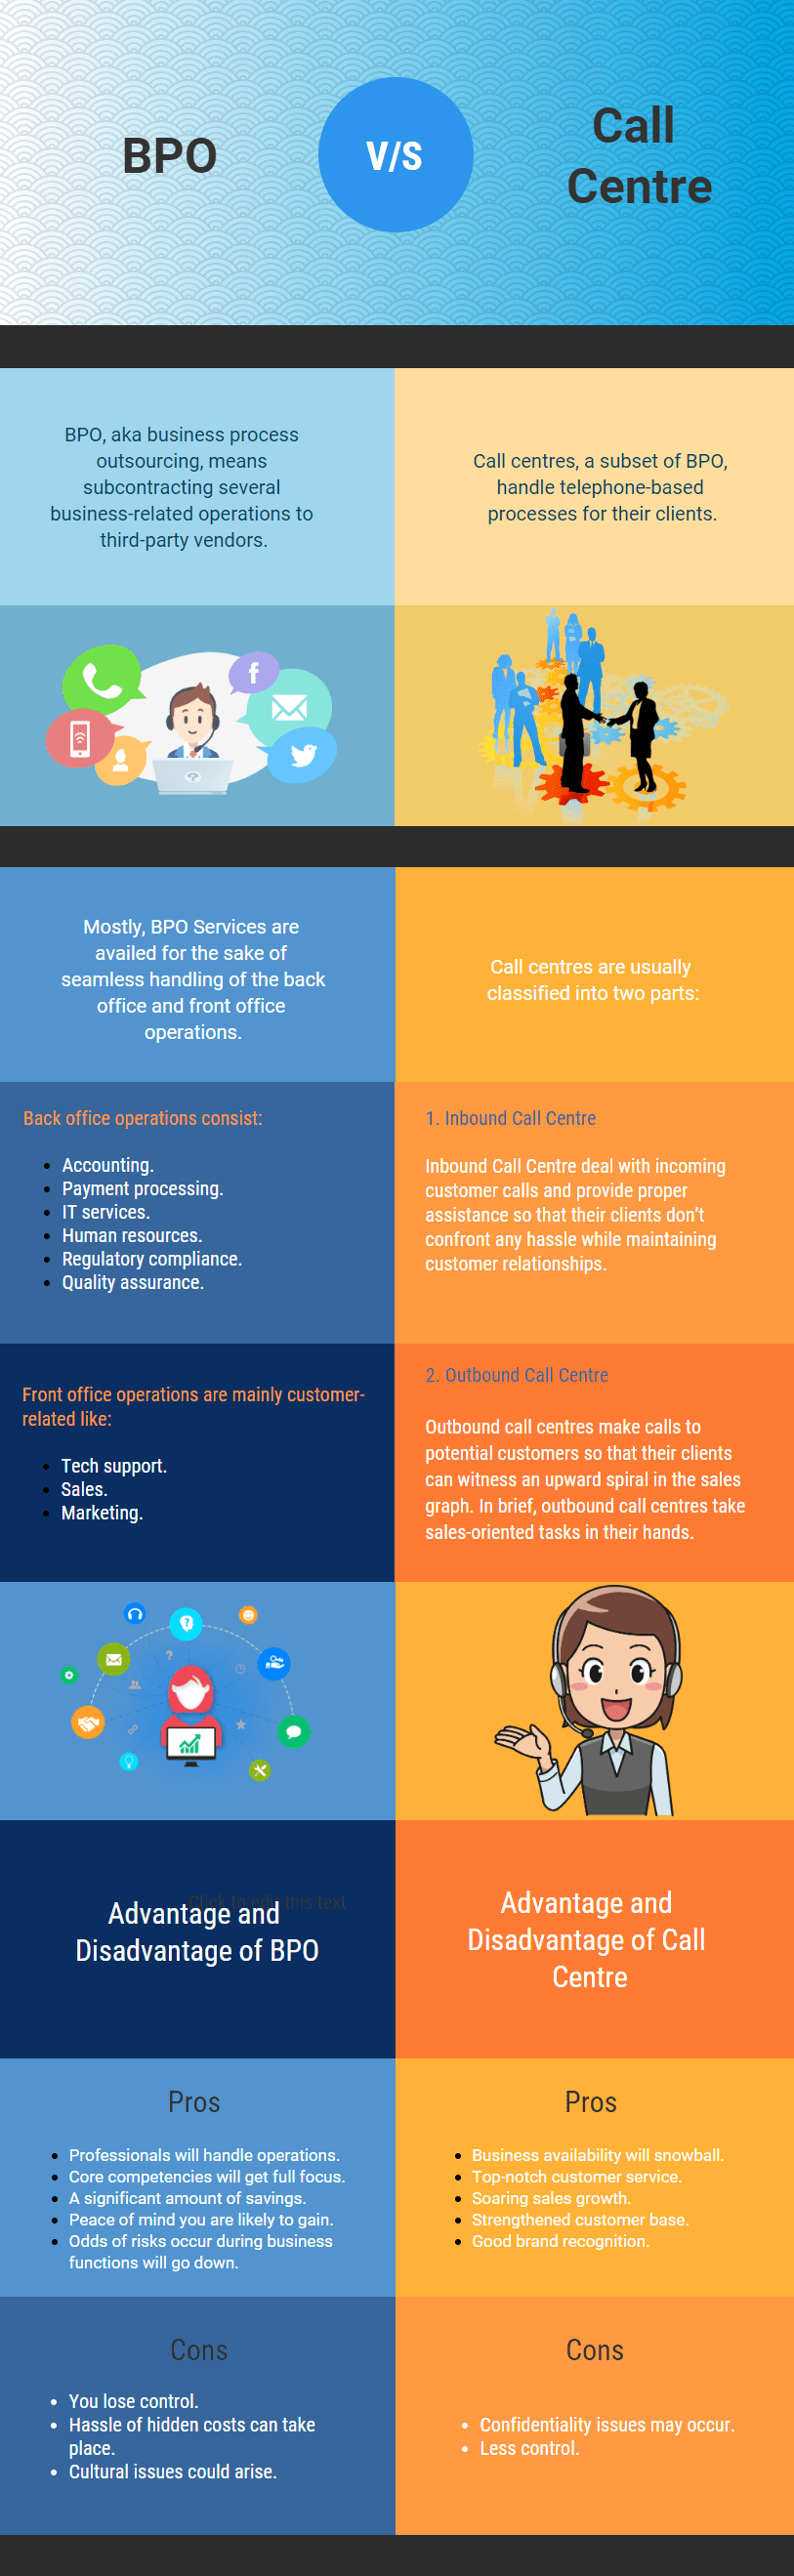 Difference between Call Centre and BPO infographic